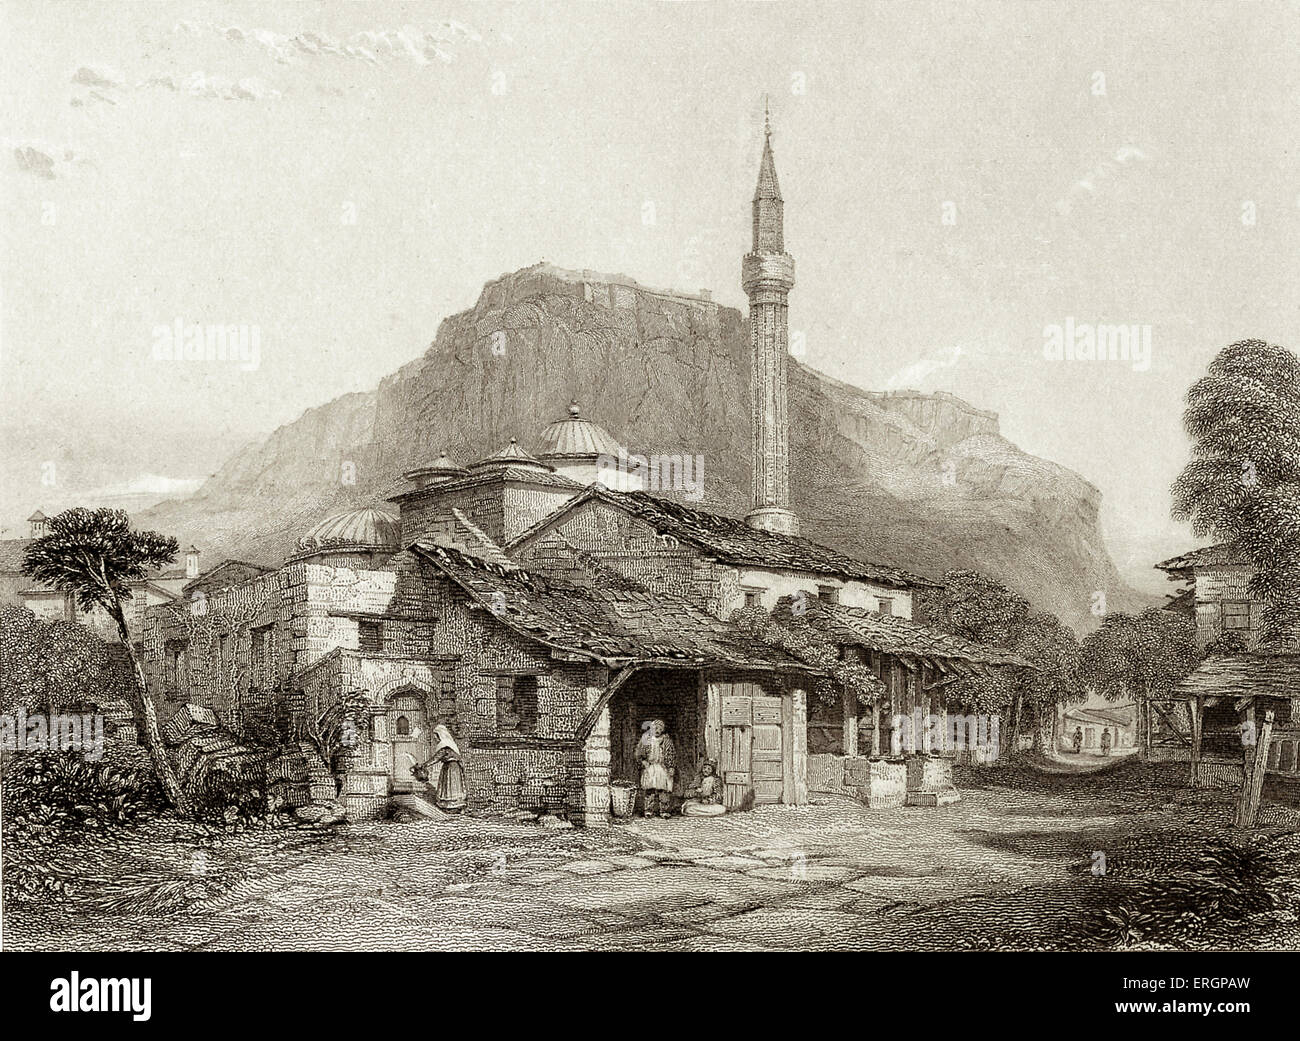 Corinth. A view of Corinth visited by Lord Byron and written about in his narrative poem 'The Siege of Corinth'. - Stock Image